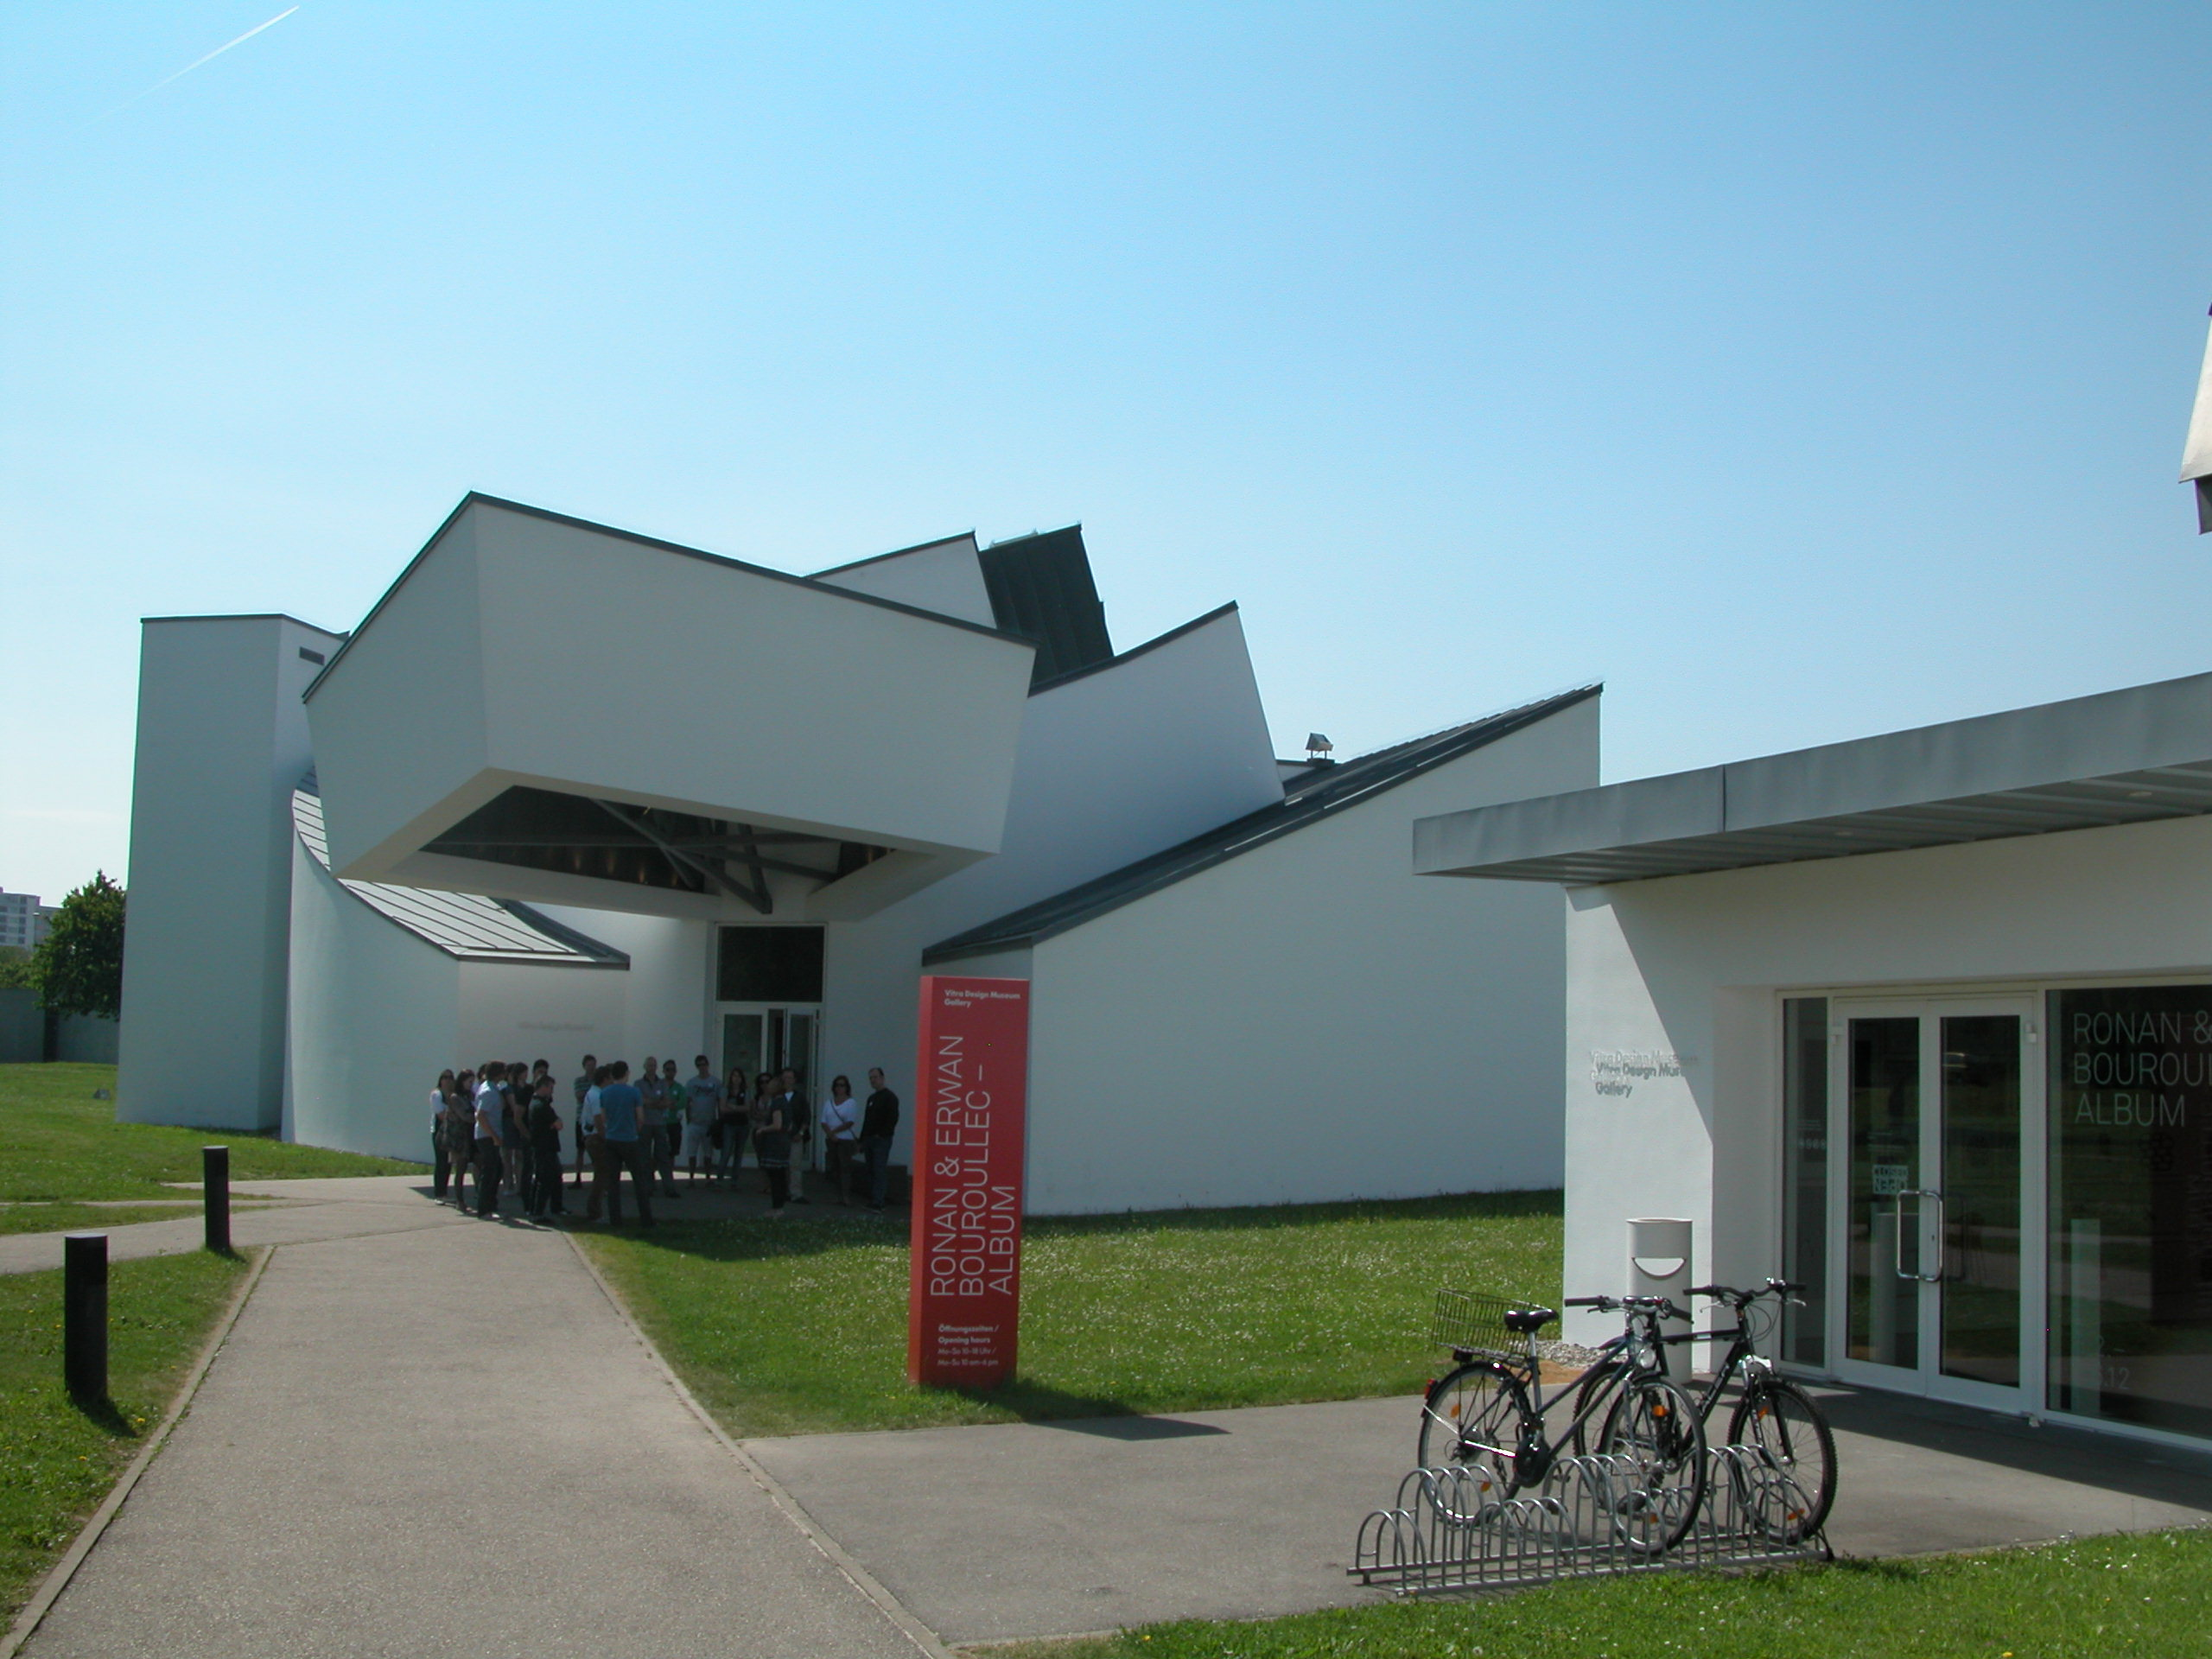 Vitra Design Museum Gallery File Vitra Design Museum And Gallery Entrance Jpg Wikimedia Commons